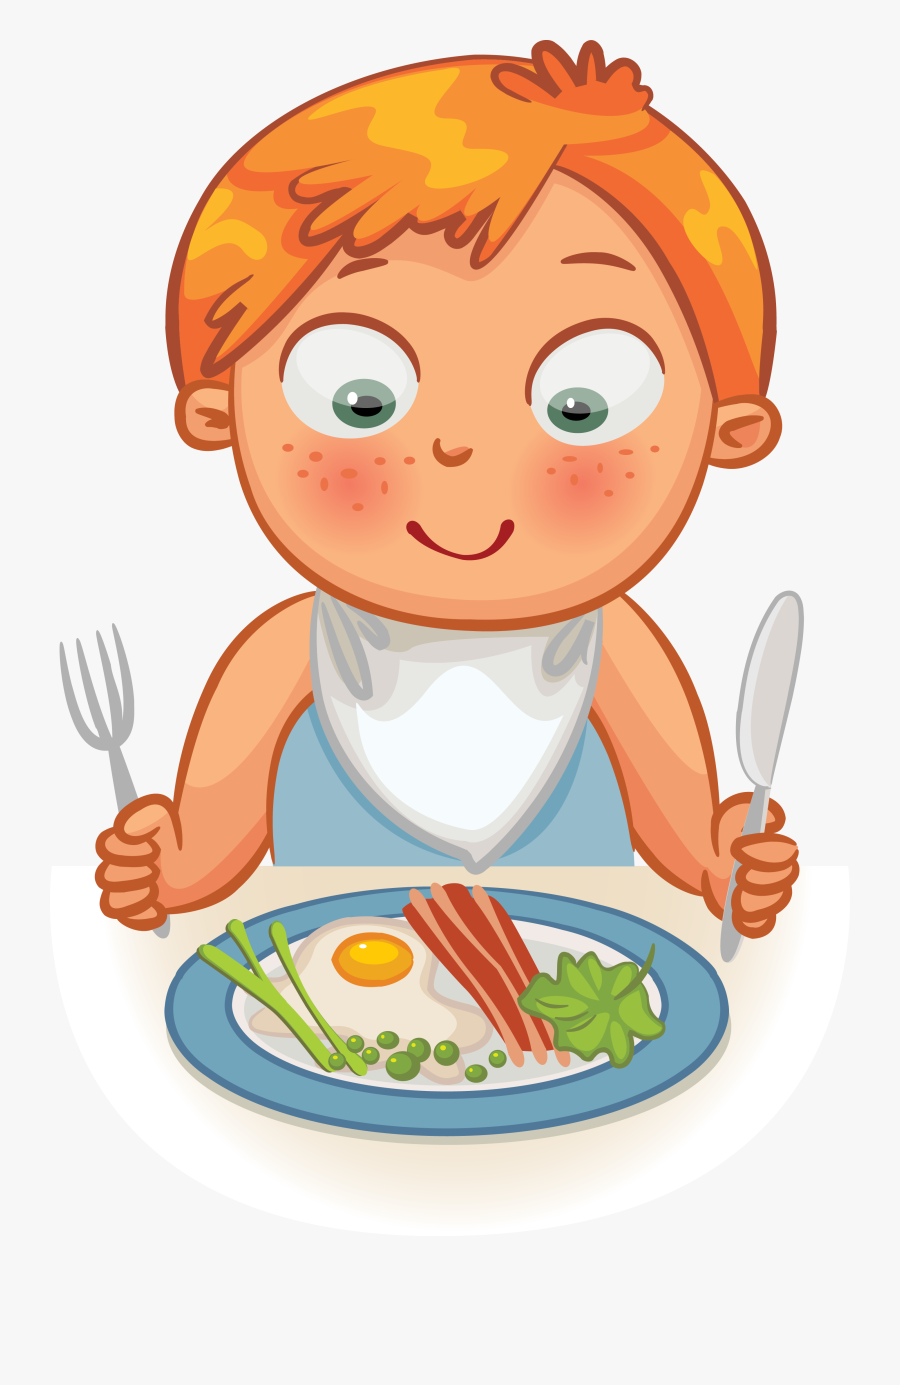 Transparent Kid Eating Cereal Clipart - Kid Eating Clipart, Transparent Clipart